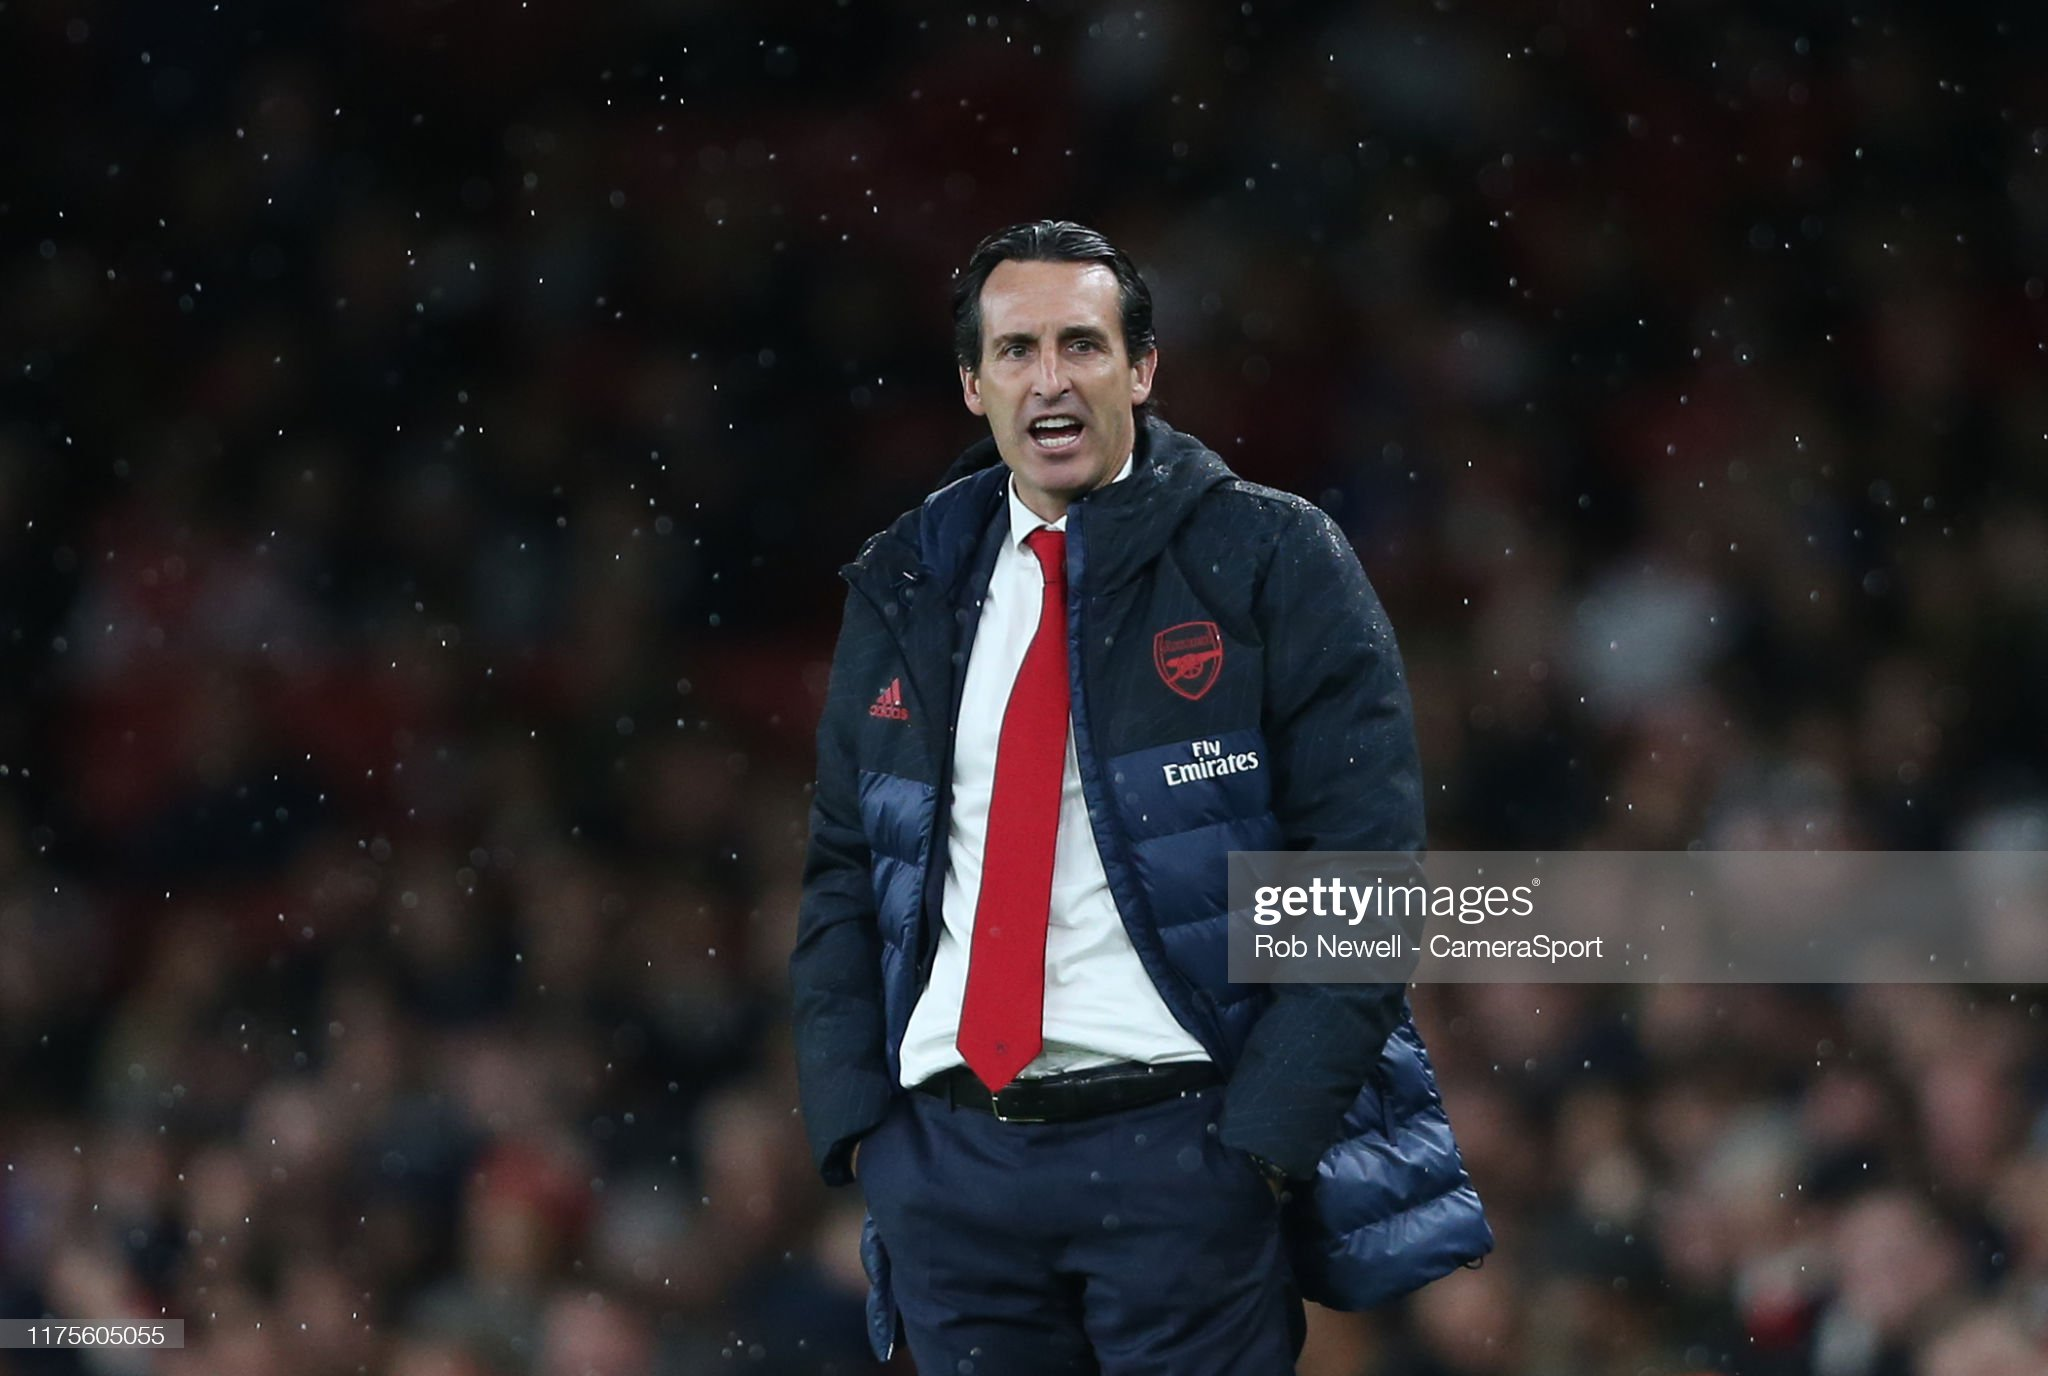 Sheffield United v Arsenal preview, prediction and odds